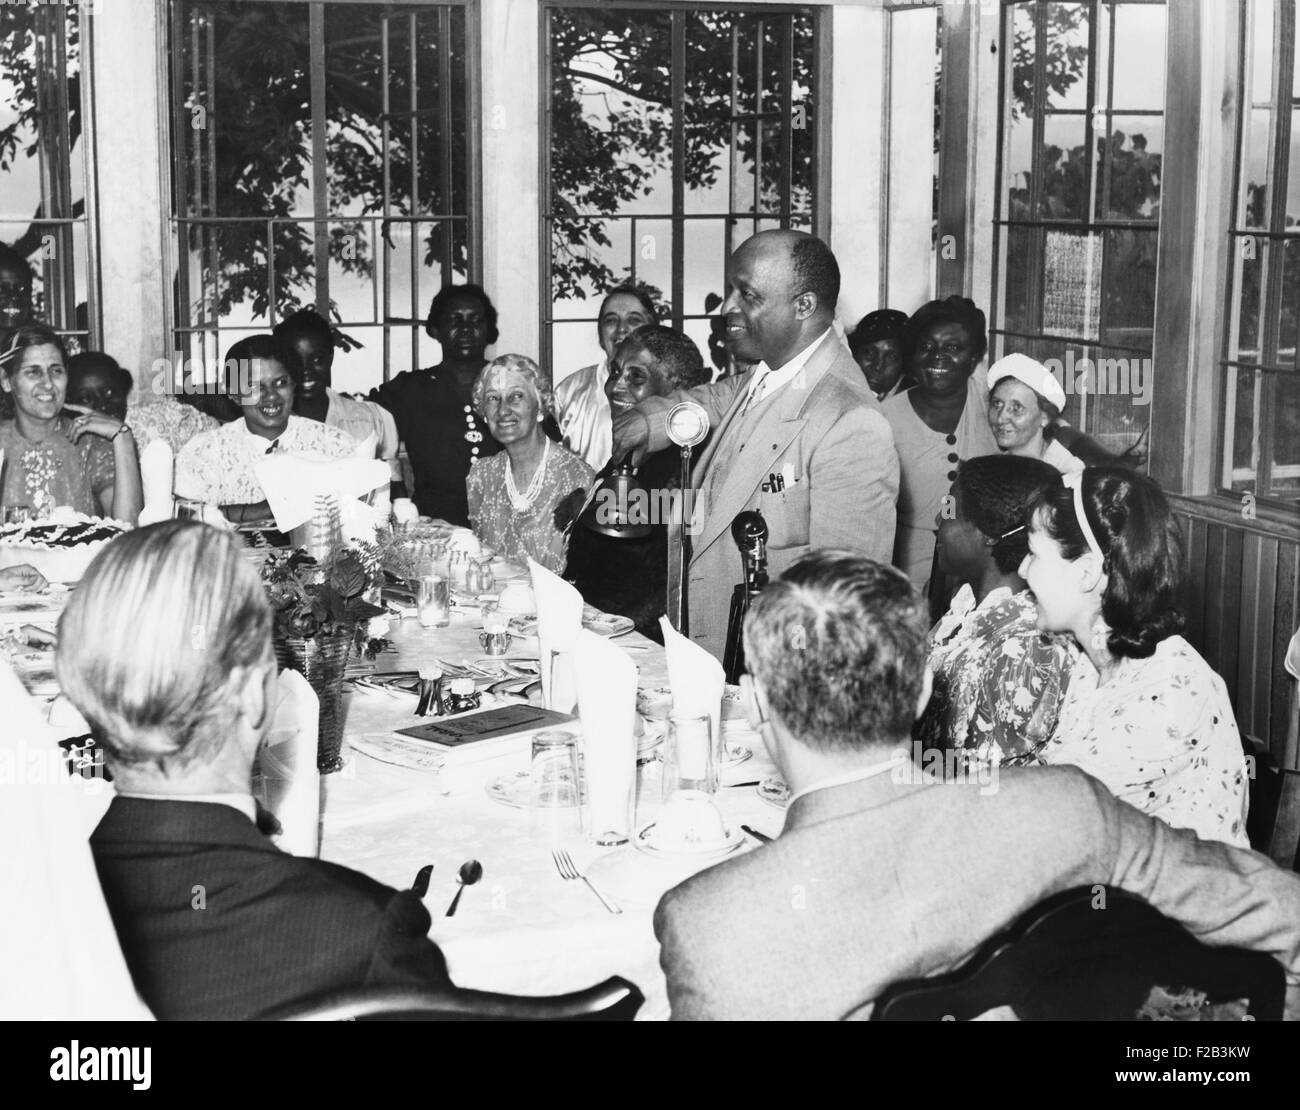 Father Divine rings the dinner bell calling his 'angels' and disciples at the Milton, N.Y. 'Heaven'. - Stock Image